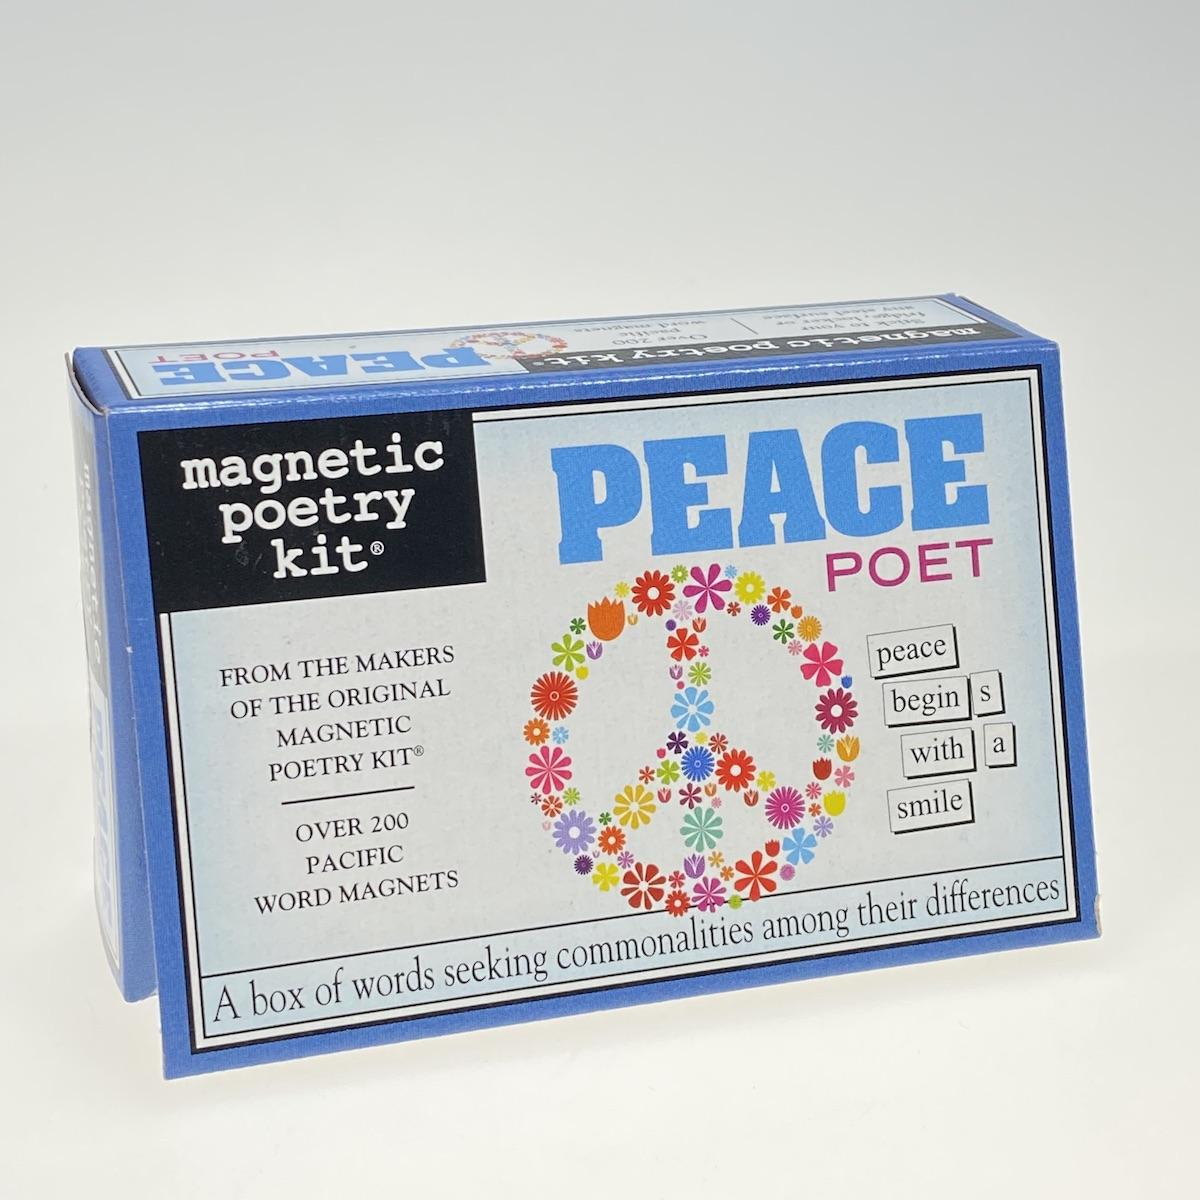 Magnetic Poetry Peace Poet